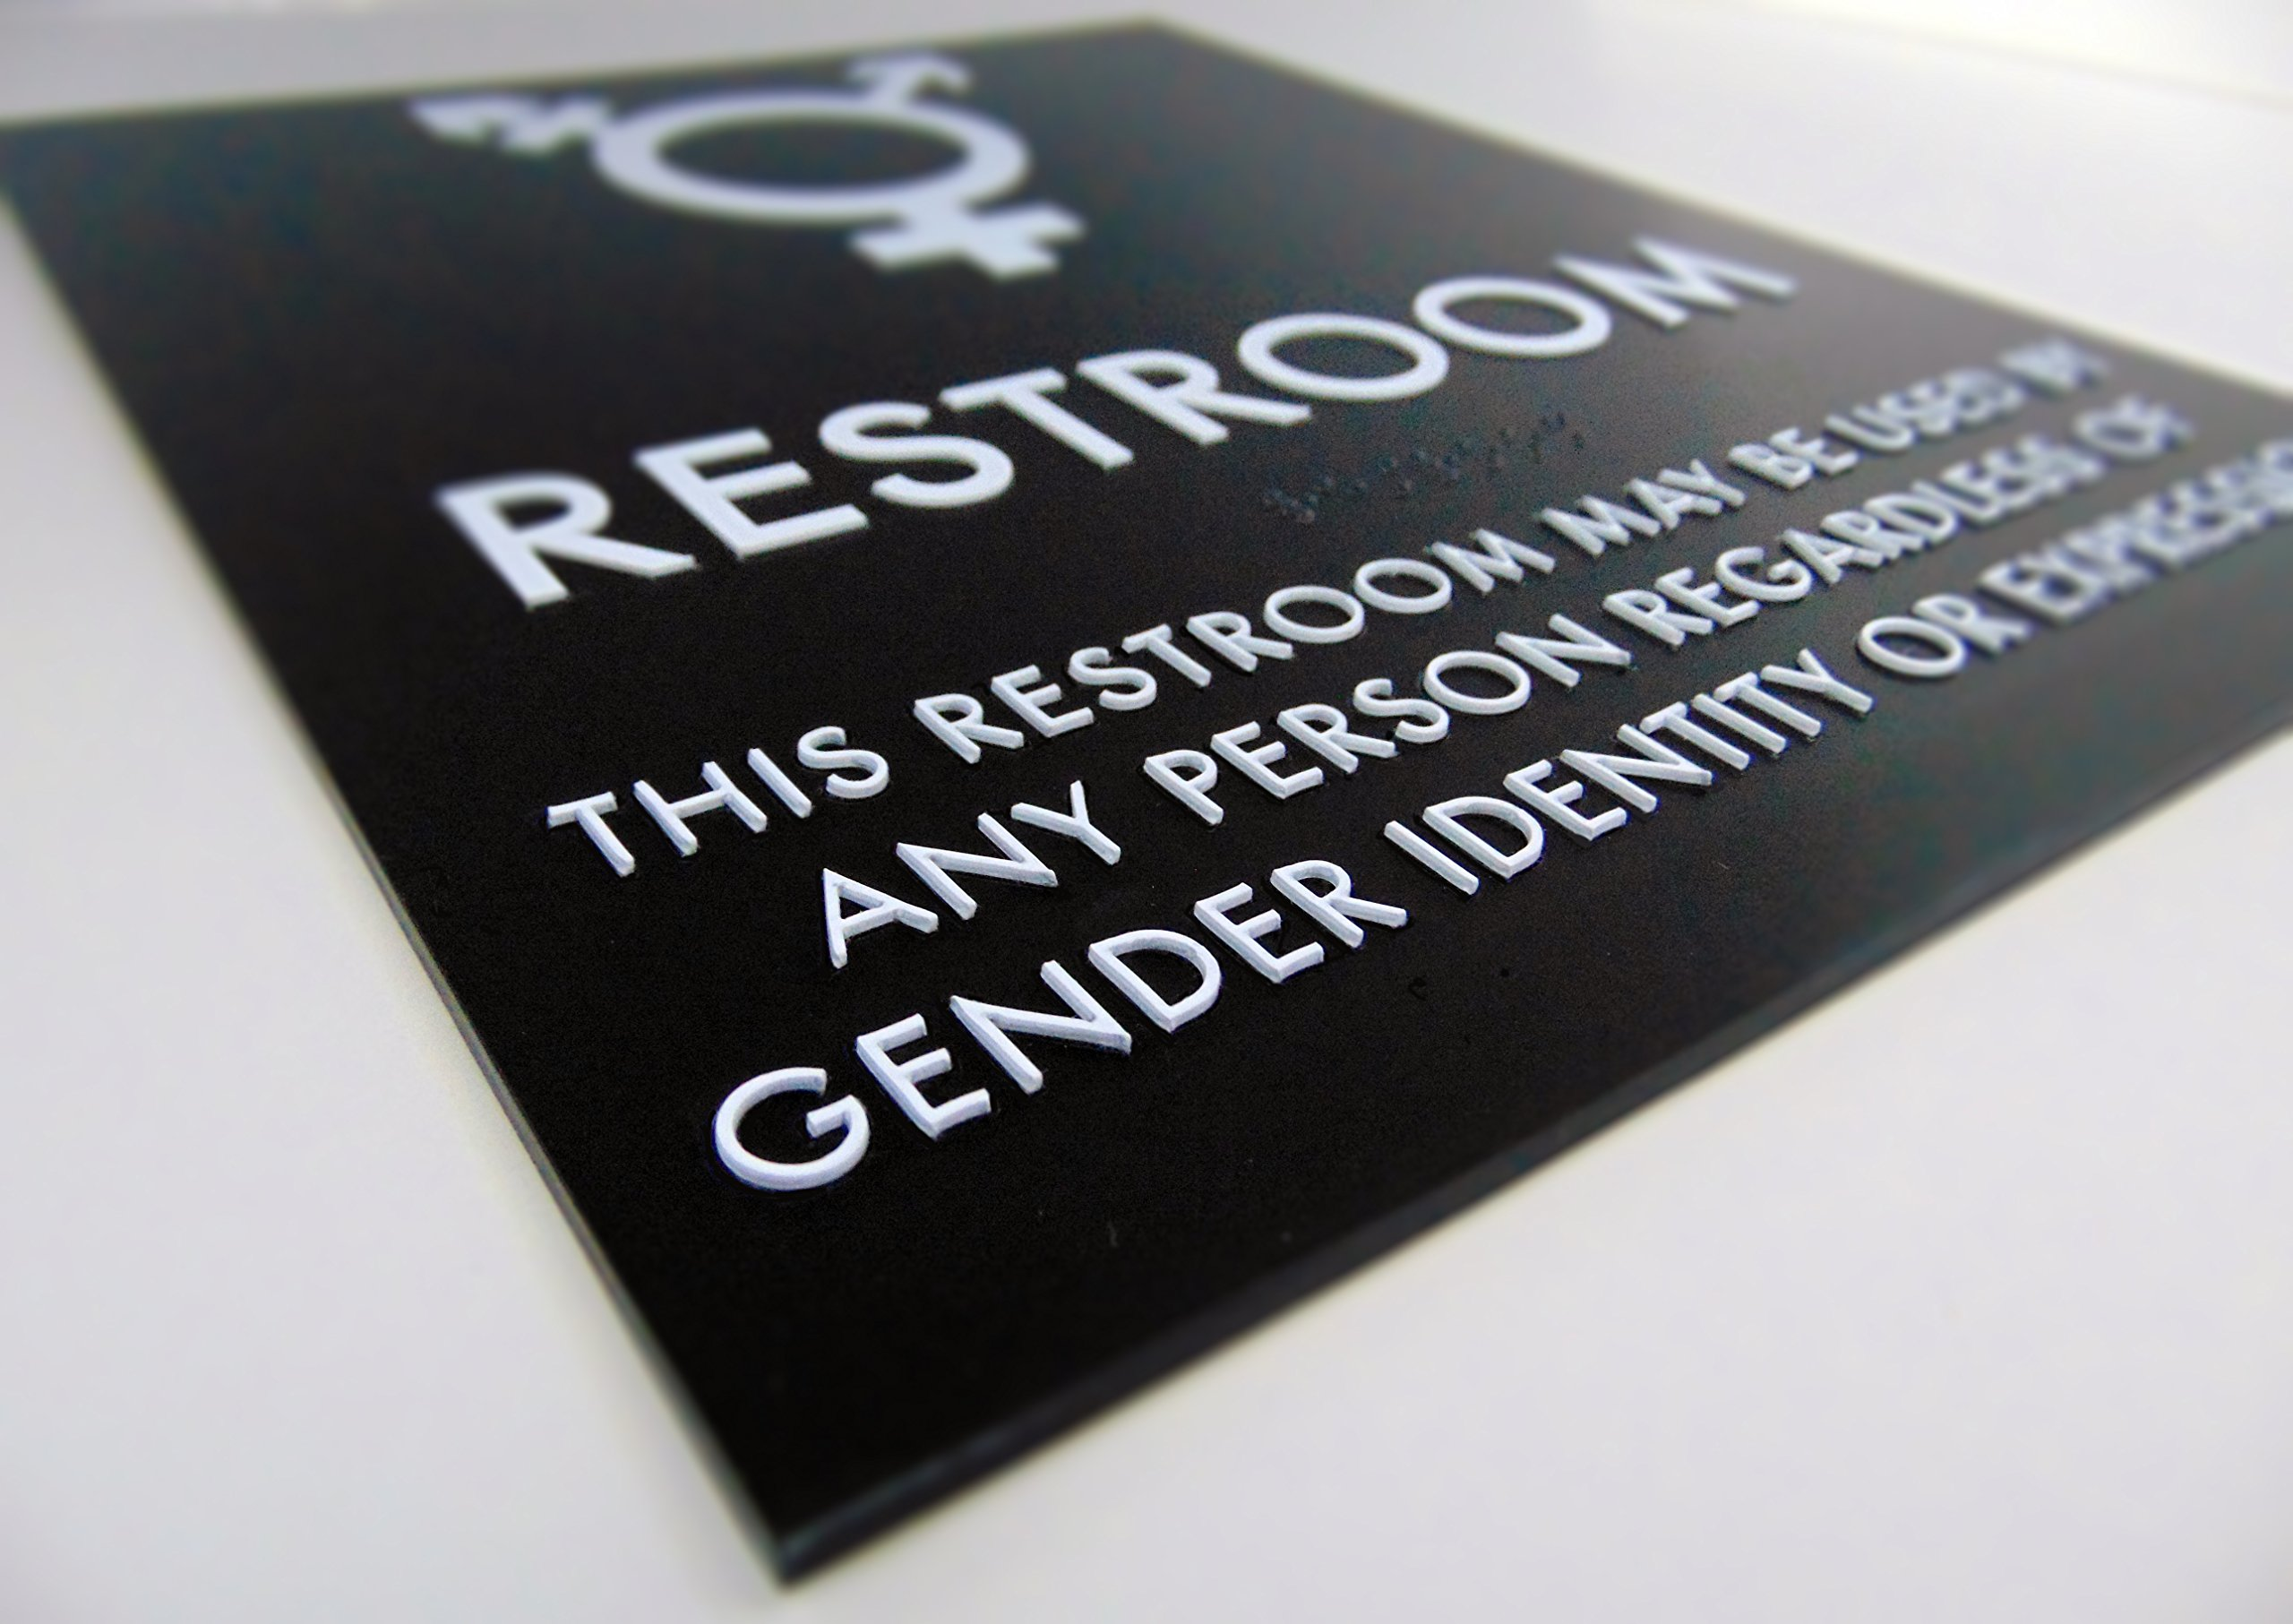 Transgender Symbol Restroom Sign 8'' x 10'' with Braille - ADA Compliant (Black/White)